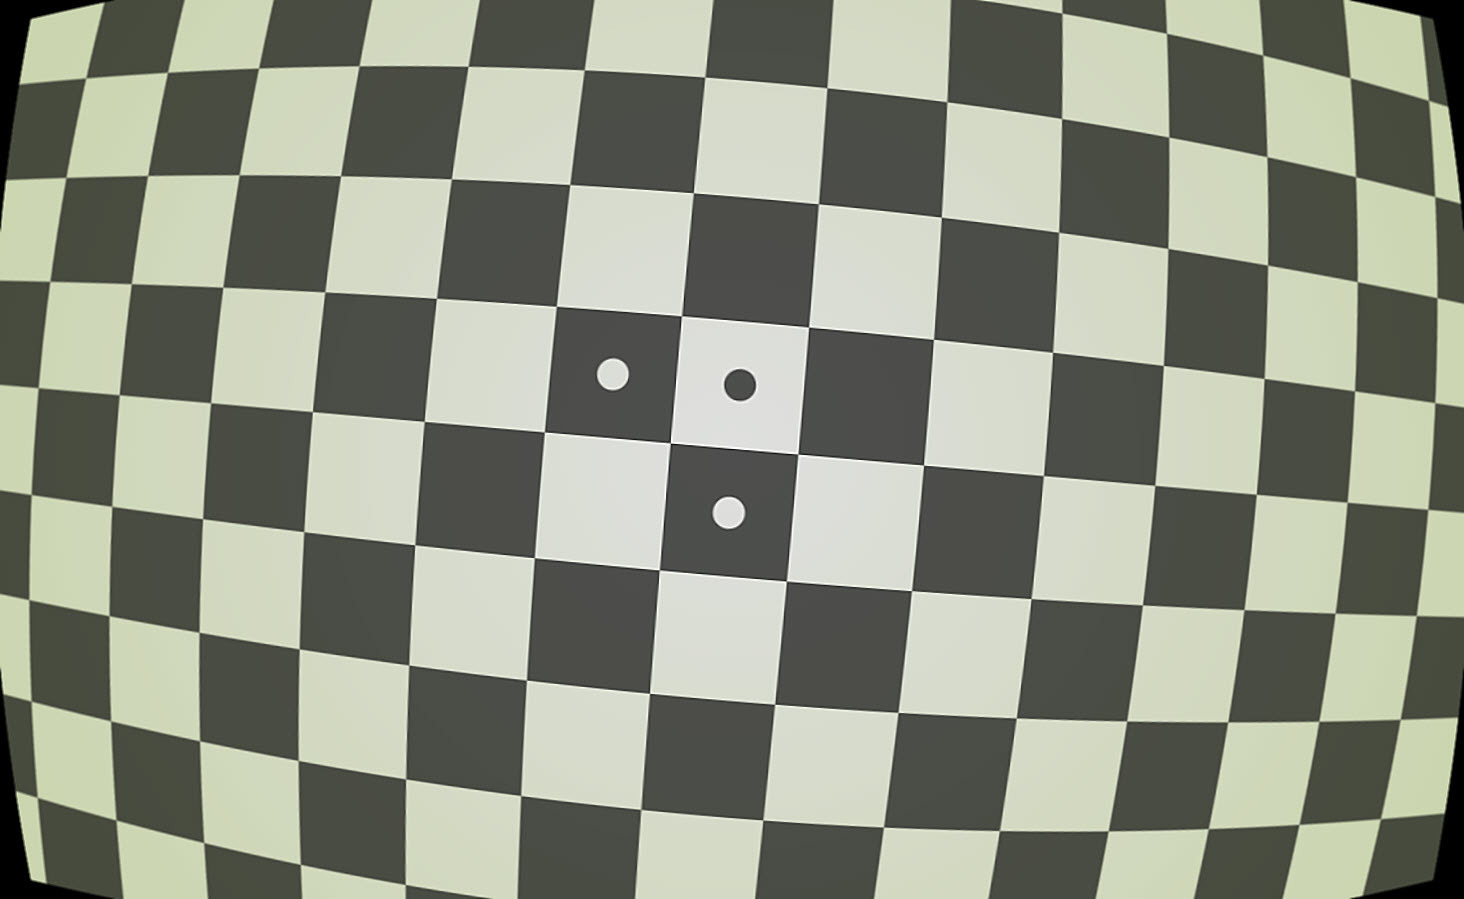 Checkerboard_simulated_for_analysis